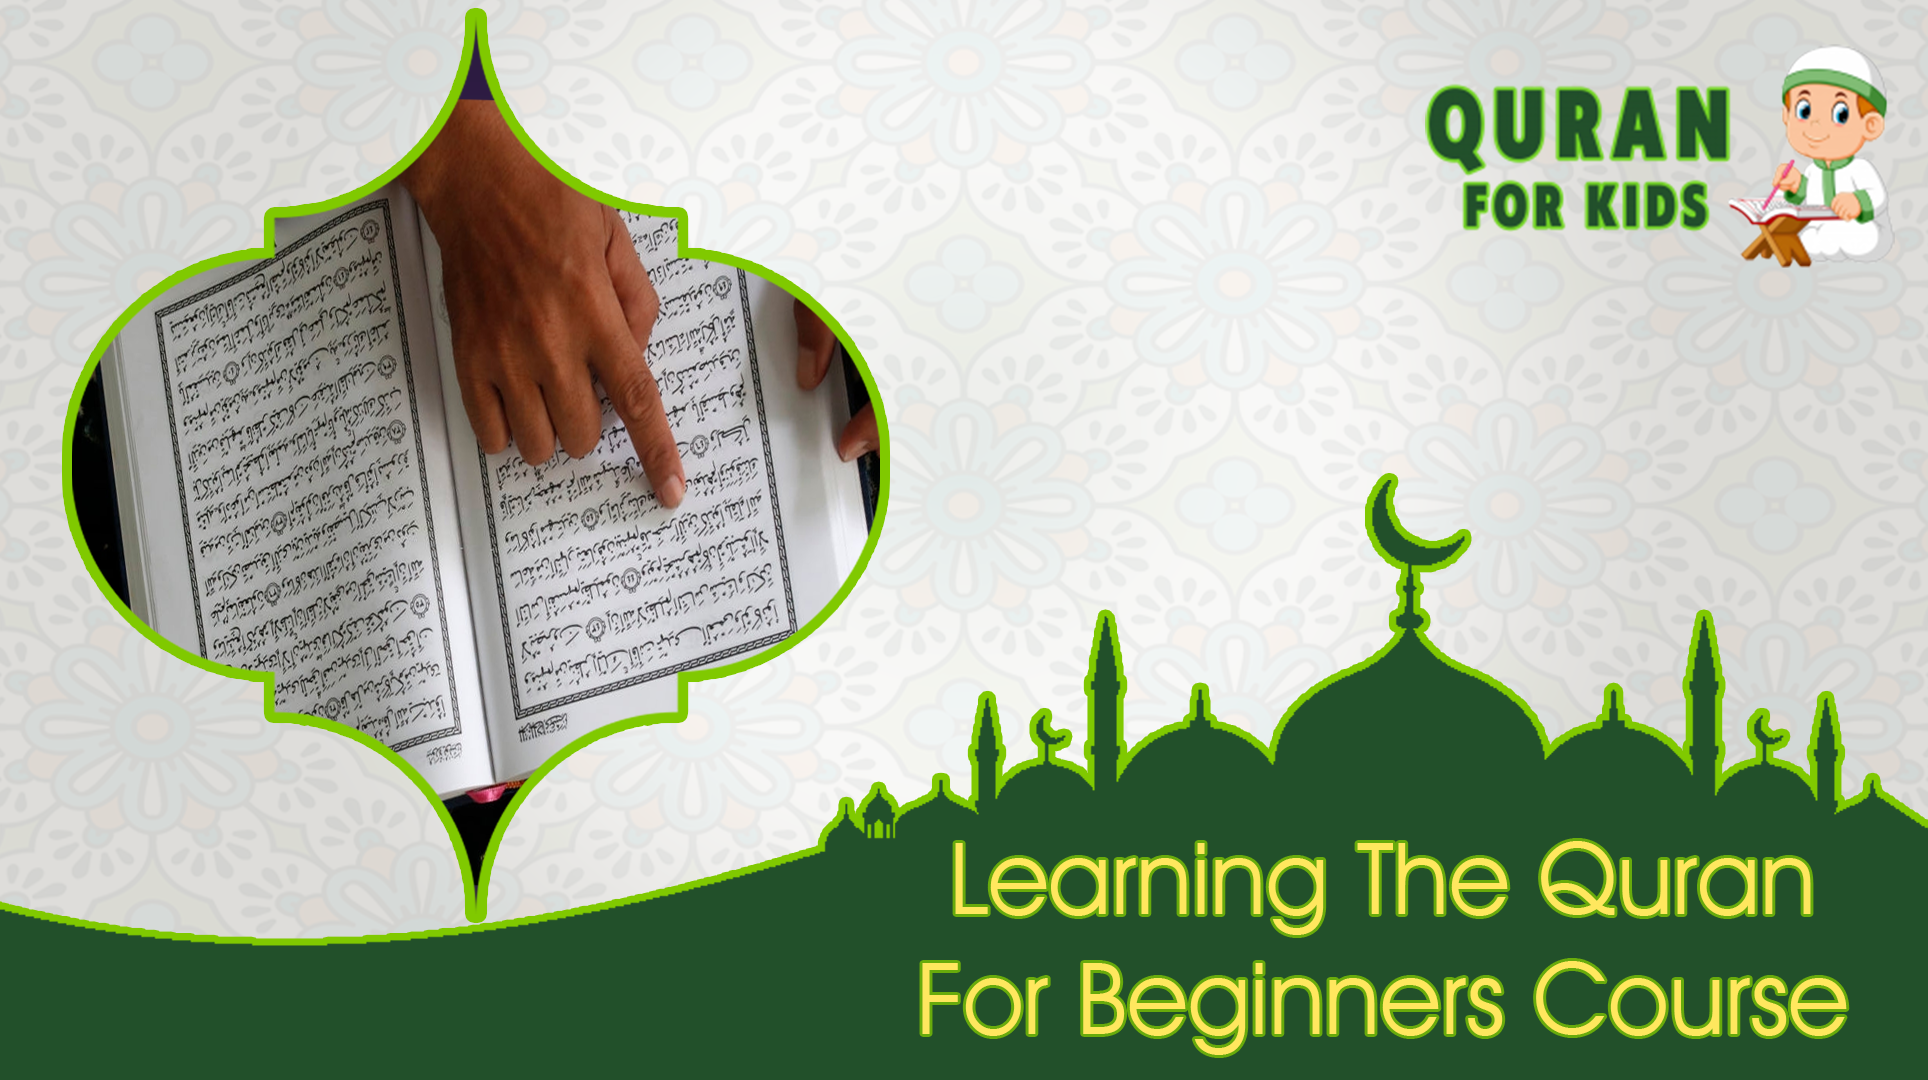 Learning The Quran For Beginners Course